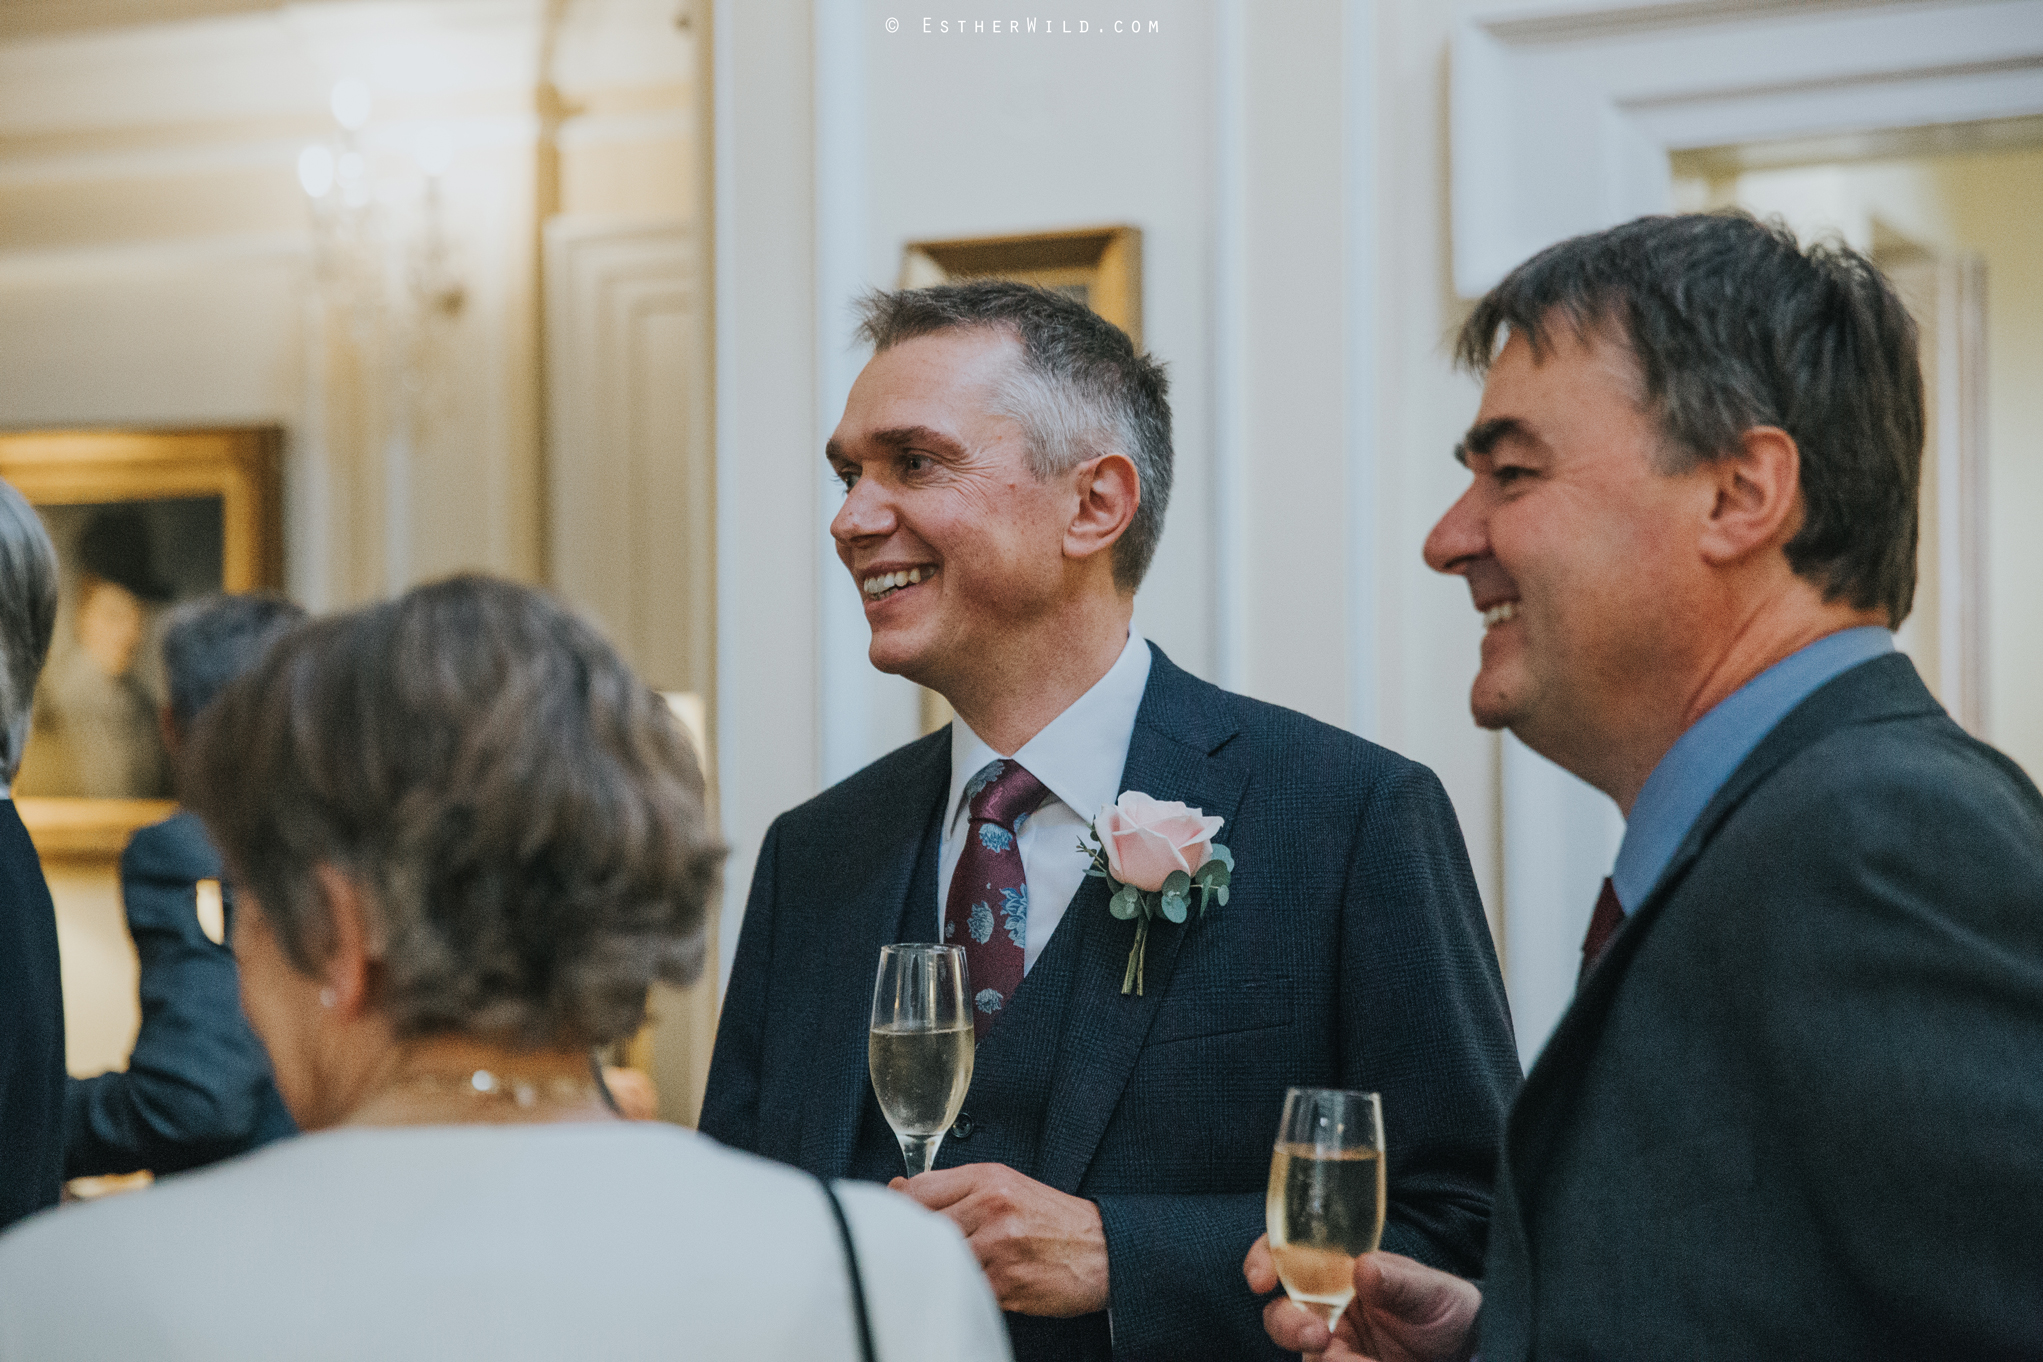 Norwich_Assembly_House_Wedding_Esther_Wild_Photographer_IMG_4012.jpg